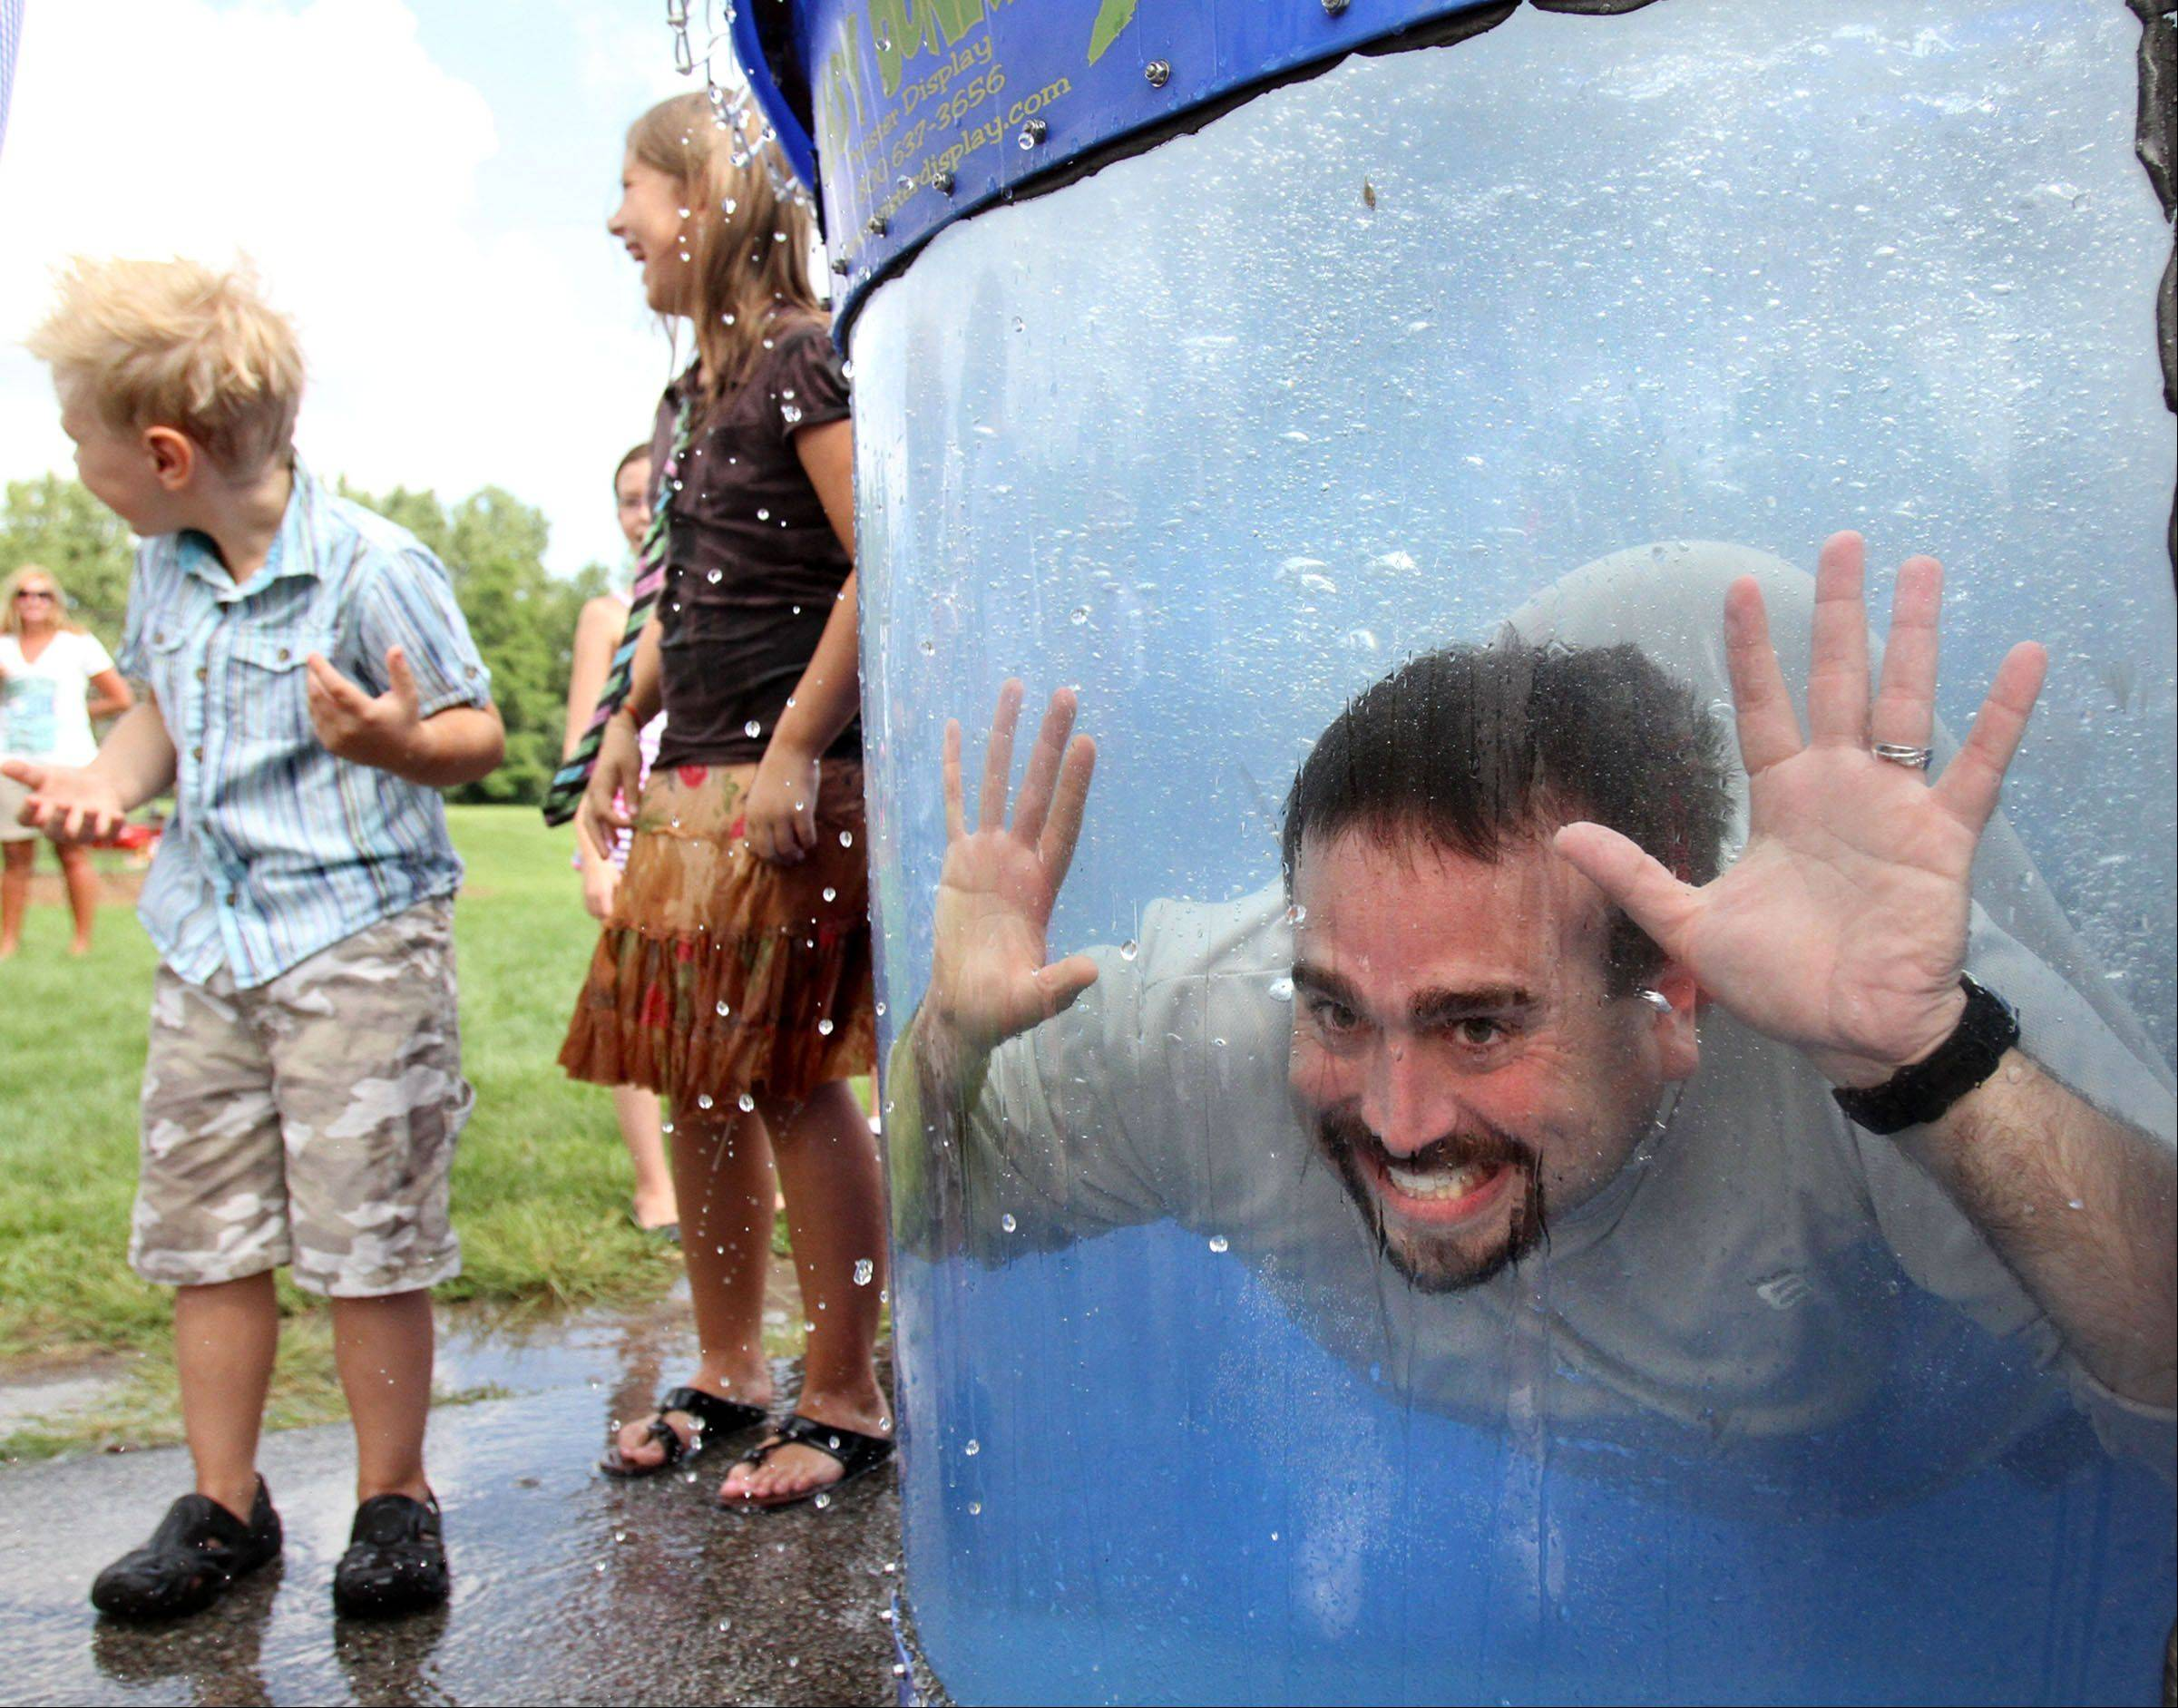 Cameron Shapiro, principal of Seth Paine Elementary School, while underwater in the dunk tank gets a laugh from students including fourth-grader Maja Keska, center, at the school's 50th birthday party held by Lake Zurich Community Unit School District 95 at the school in Lake Zurich on Saturday, August 27th.